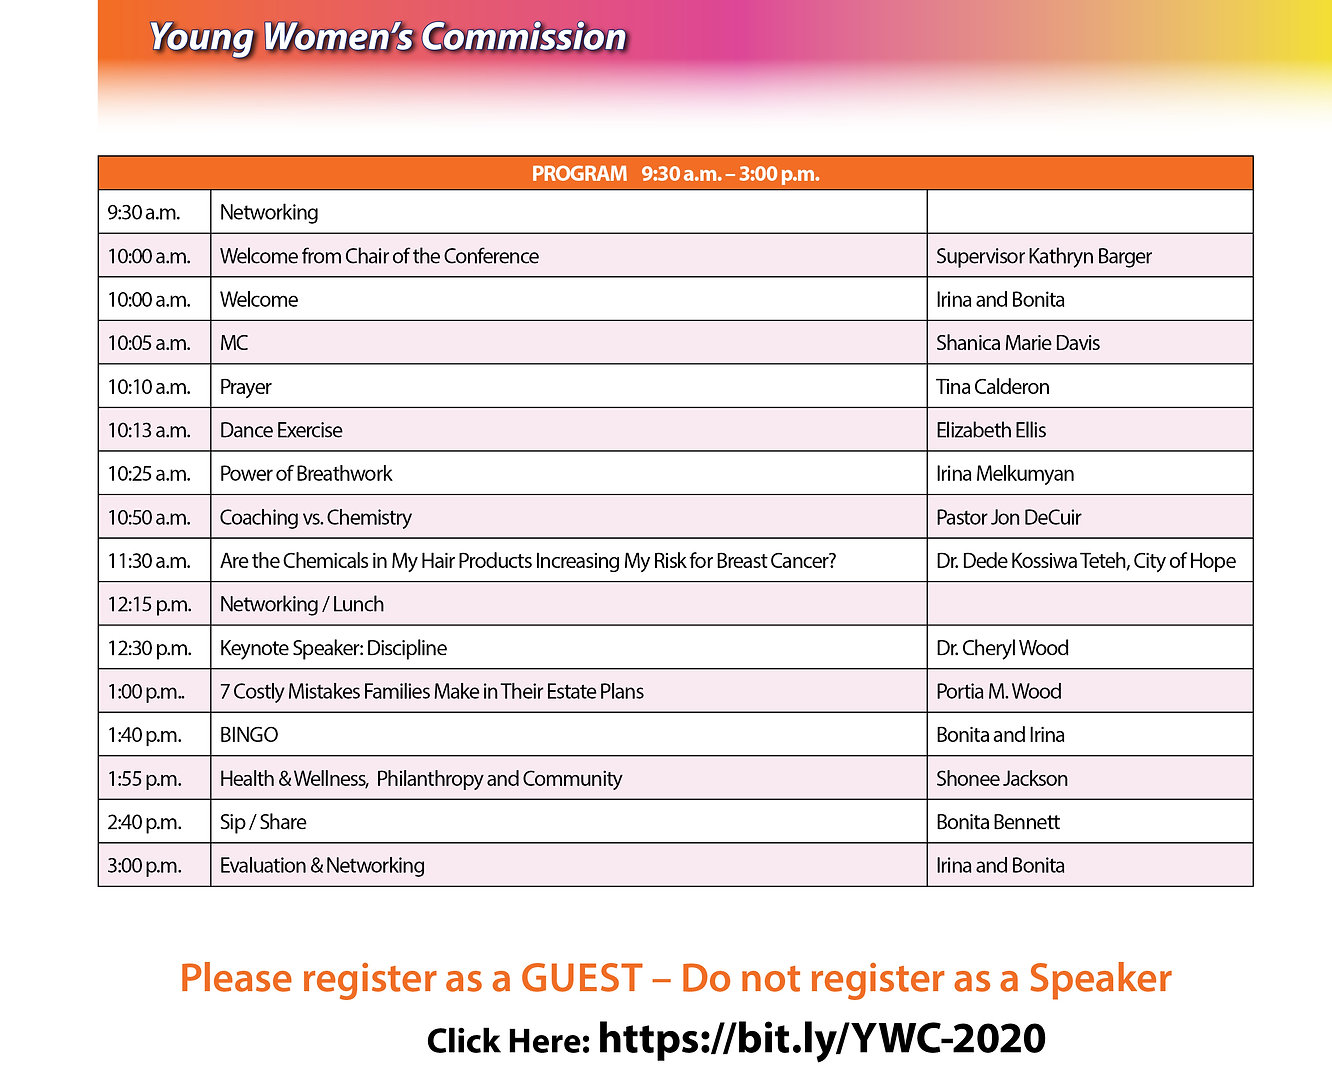 YWC schedule with Log-in.jpg